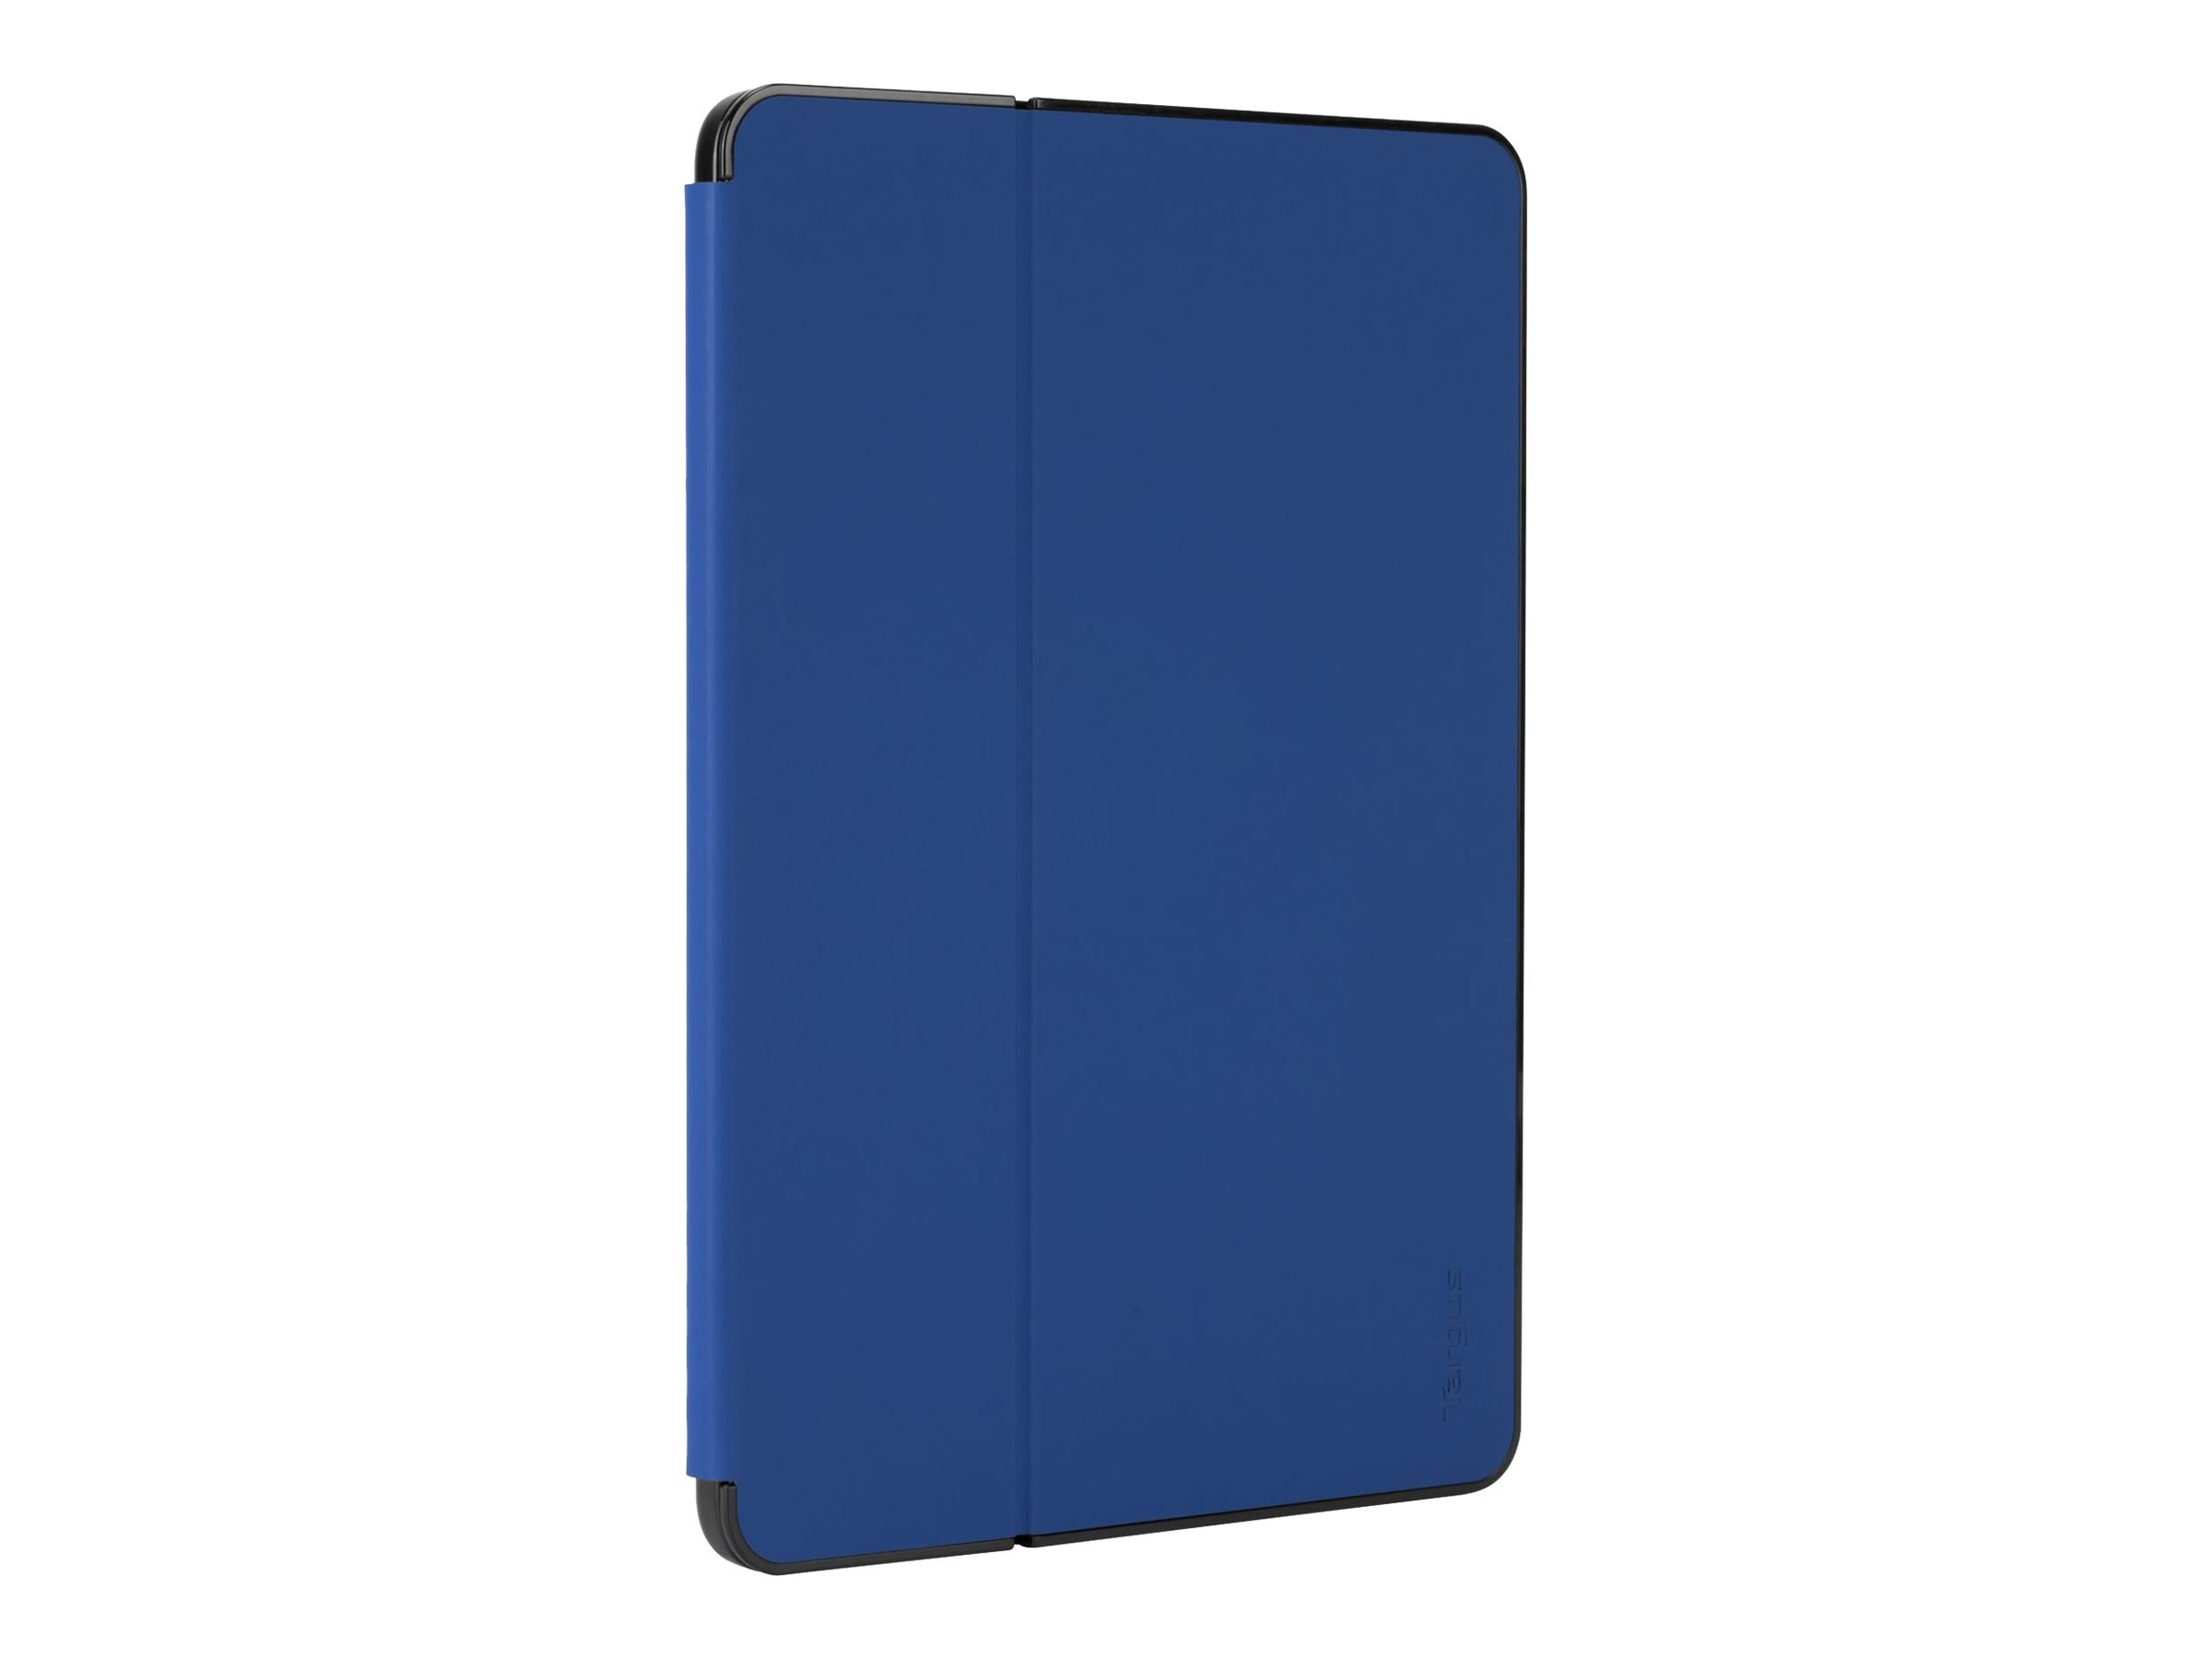 Targus Hard Cover iPad Air 2, Blue Black Edge, THZ52002US, 25113052, Carrying Cases - Tablets & eReaders